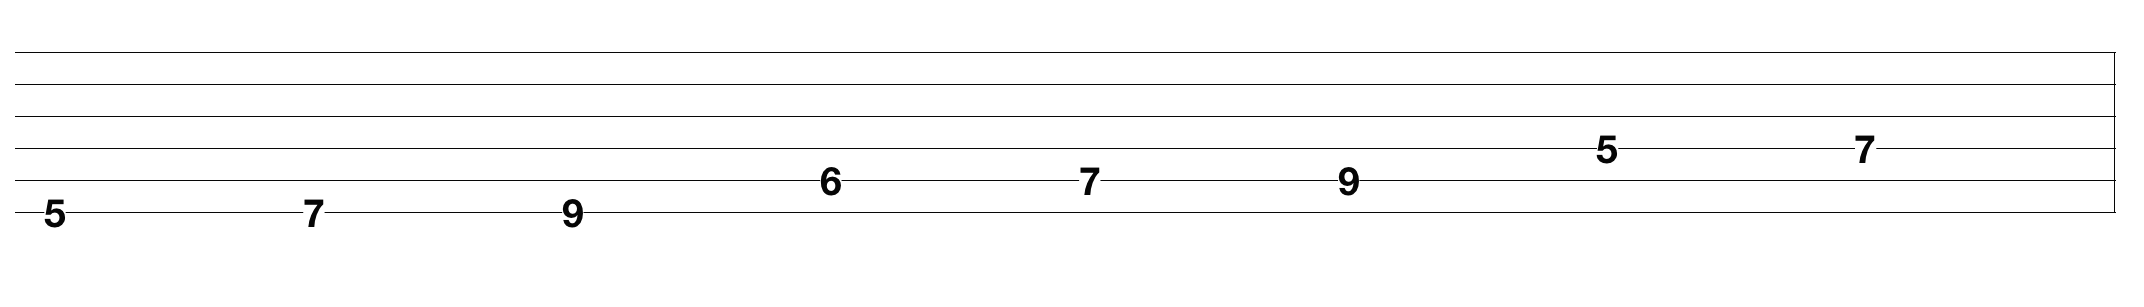 melodic-guitar-scales_4.png